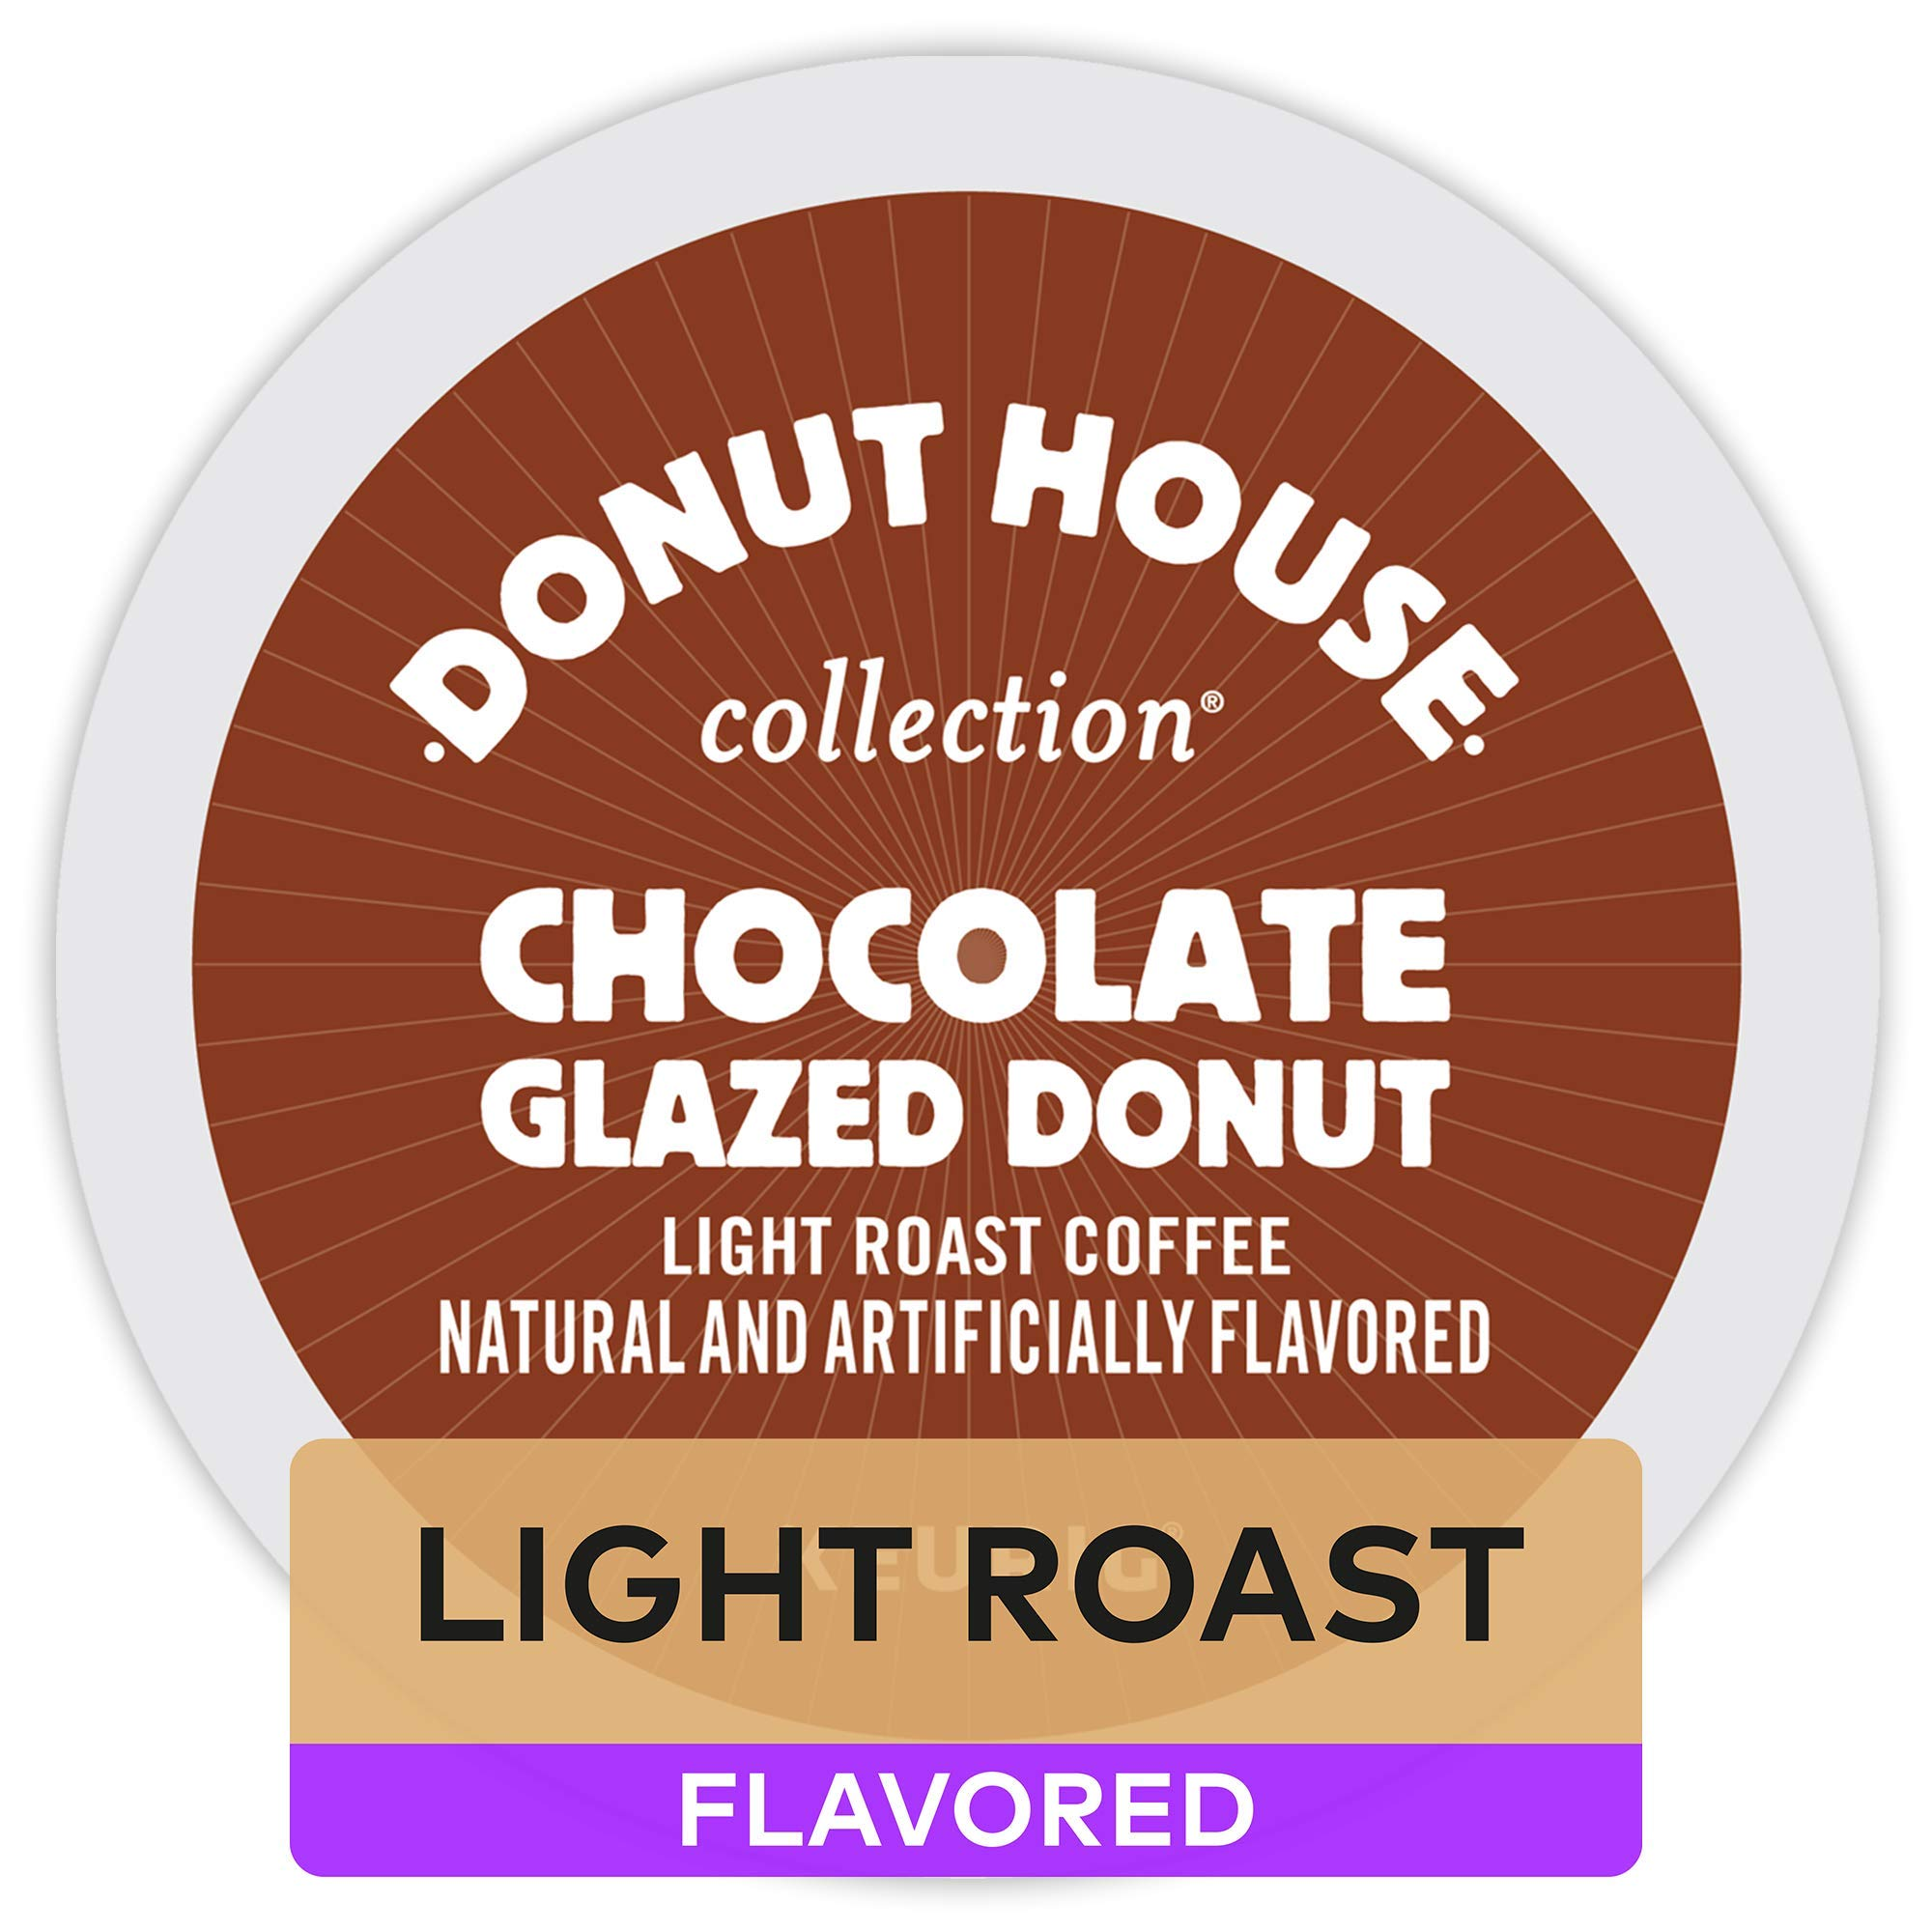 Donut House Collection Chocolate Glazed Donut, Single-Serve Keurig K Cup Pods, Light Roast Flavored Coffee, 96Count (4 Boxes of 24 Pods)